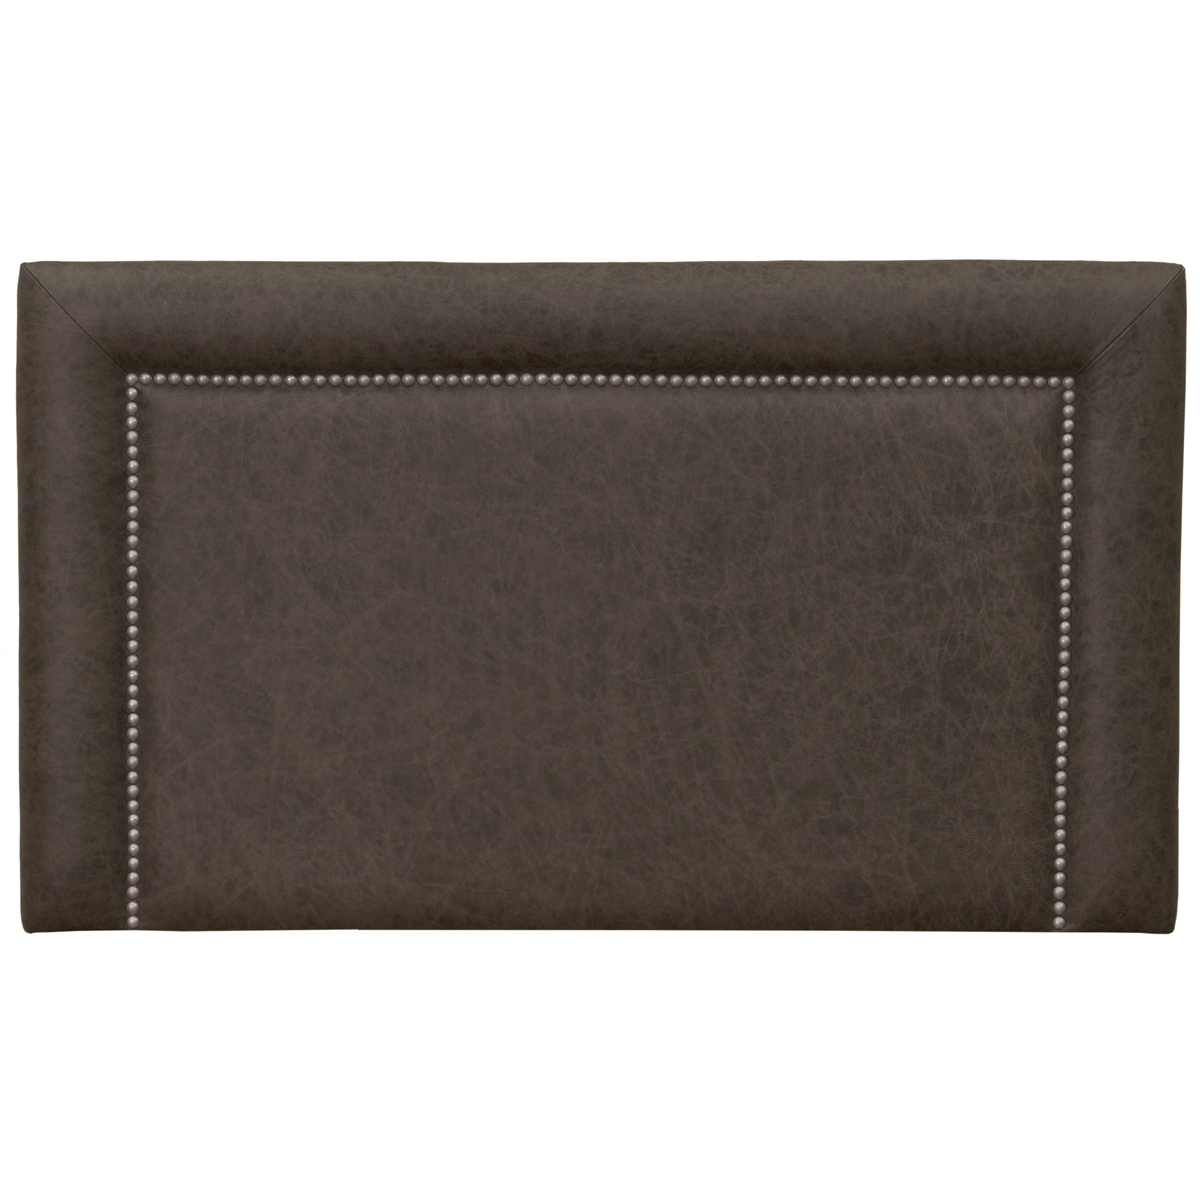 Plateau Saloon Gray Leather Headboard - Queen